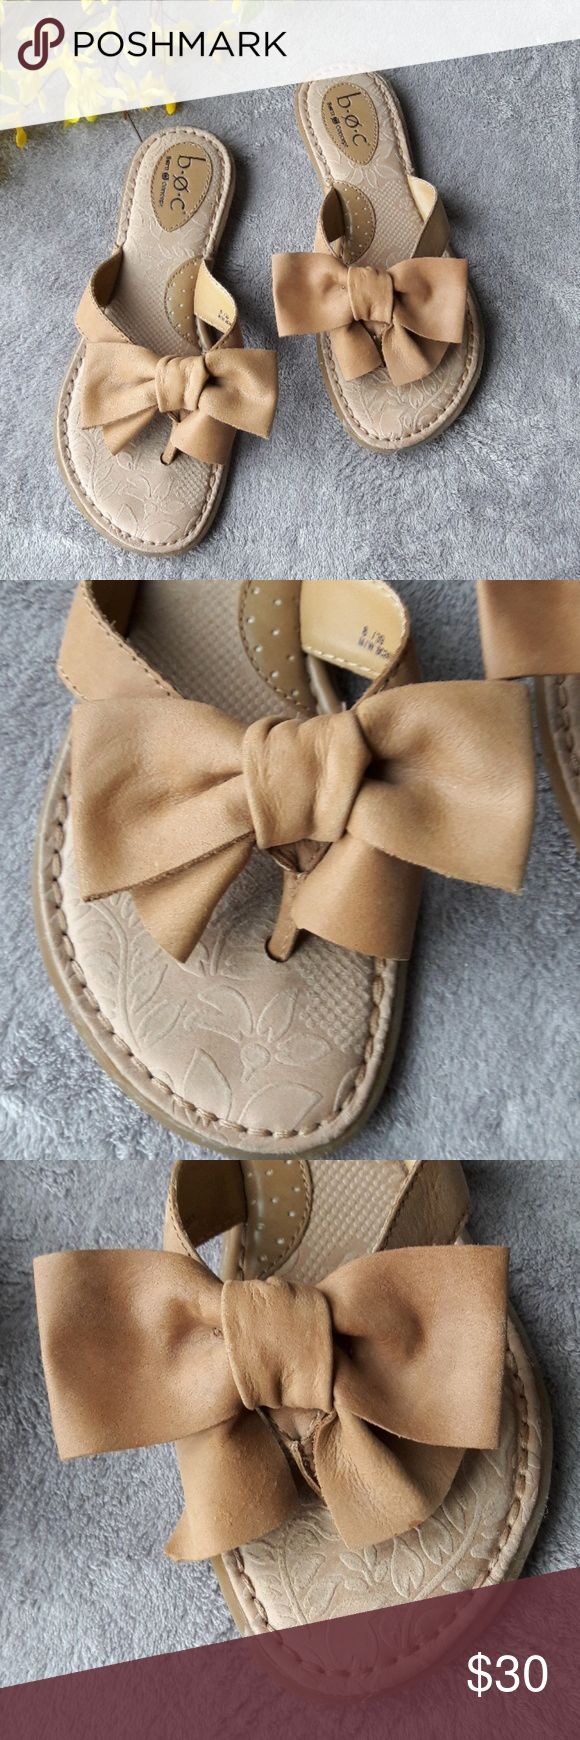 Born B.O.C. Leather Bow Flip Flops Sandals A cute pair of sandals from BOC Born Concept. A tan color with a floral base. A leather bow adorns the straps. A few small marks.   Size 8  Leather Upper b.o.c. Shoes Sandals